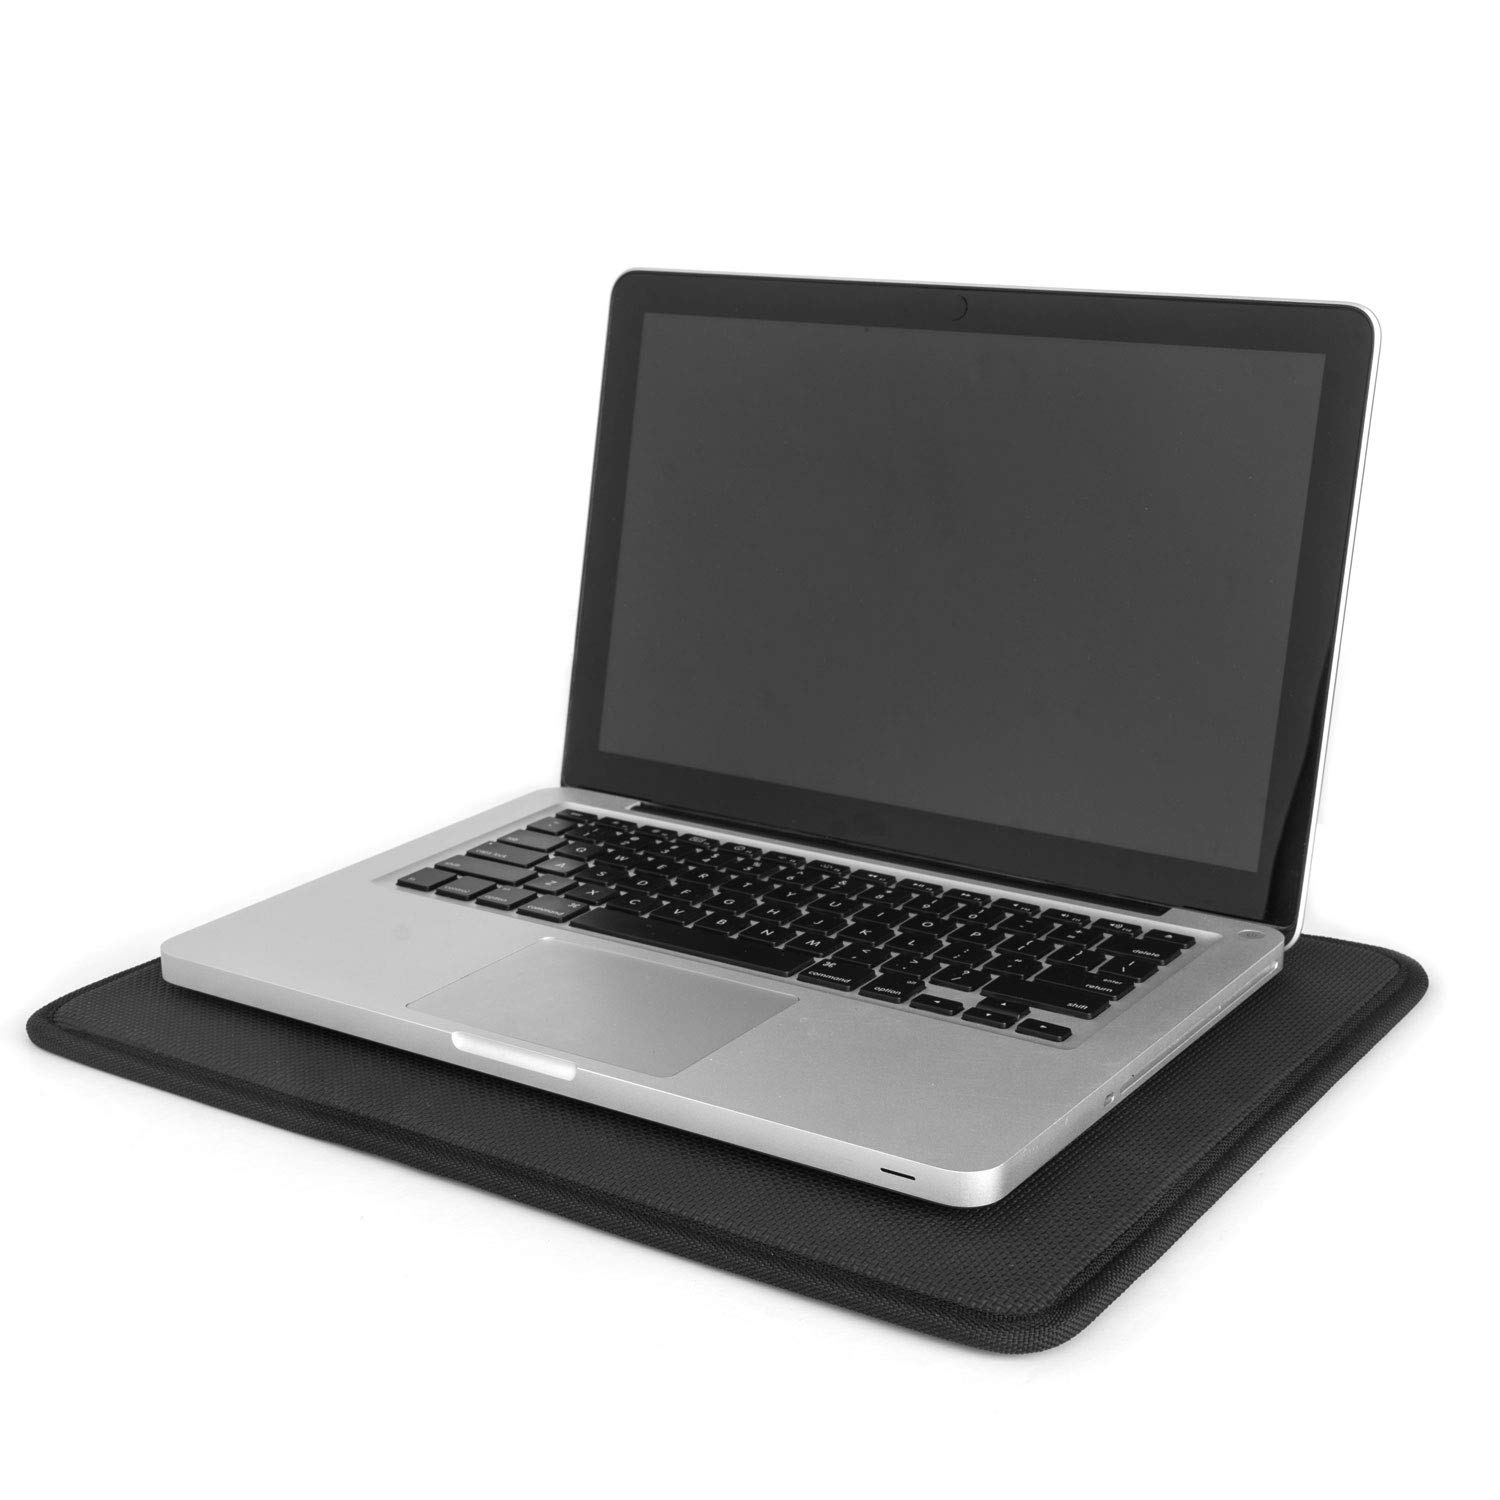 Grifiti Large Lap Desk for Home, Office, and Student Writing, Laptops, Macbooks, and Ipads